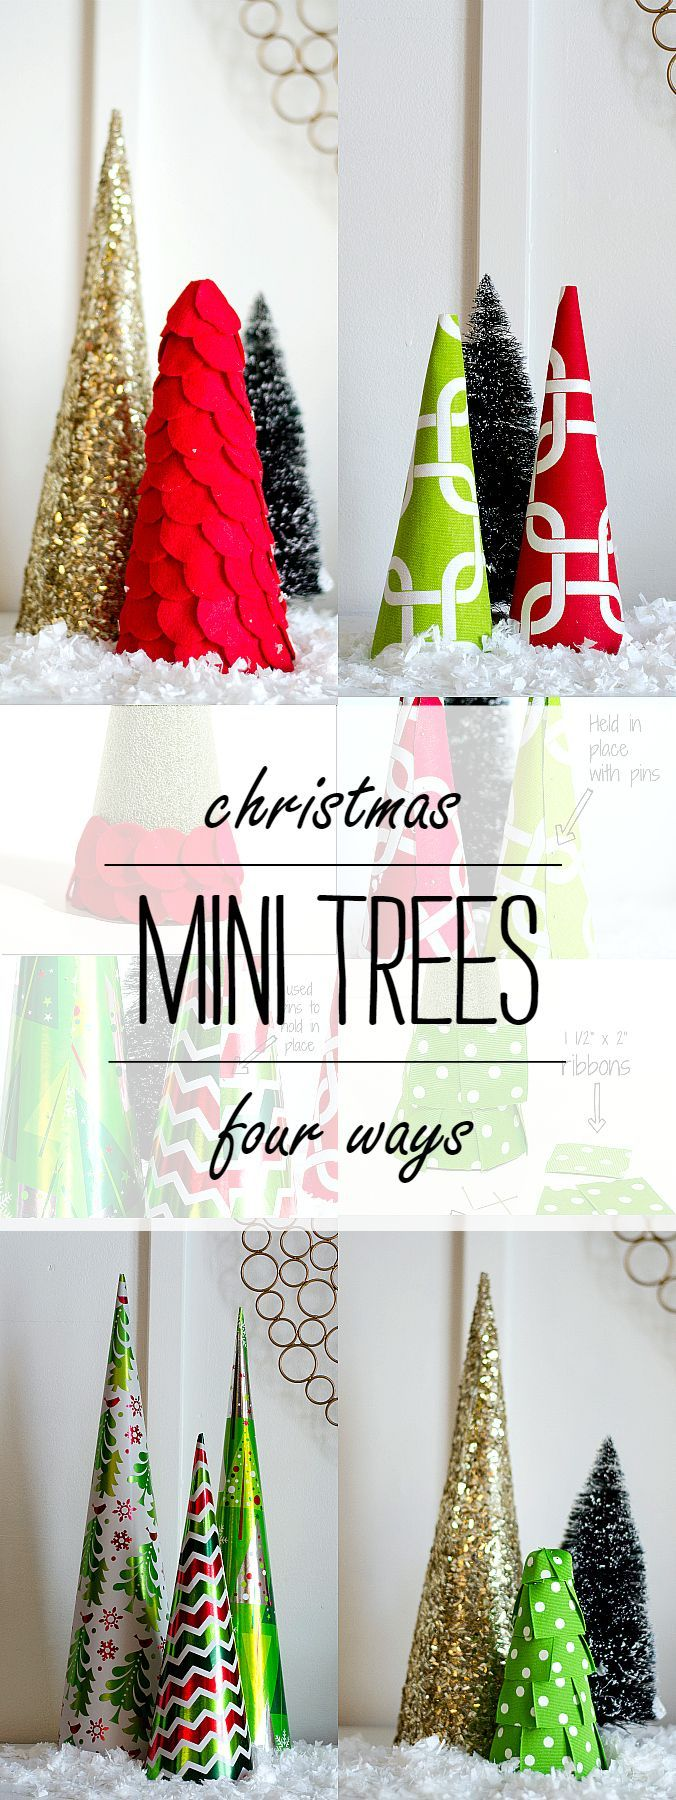 437 best Holidays: Christmas images on Pinterest | Christmas decor ...